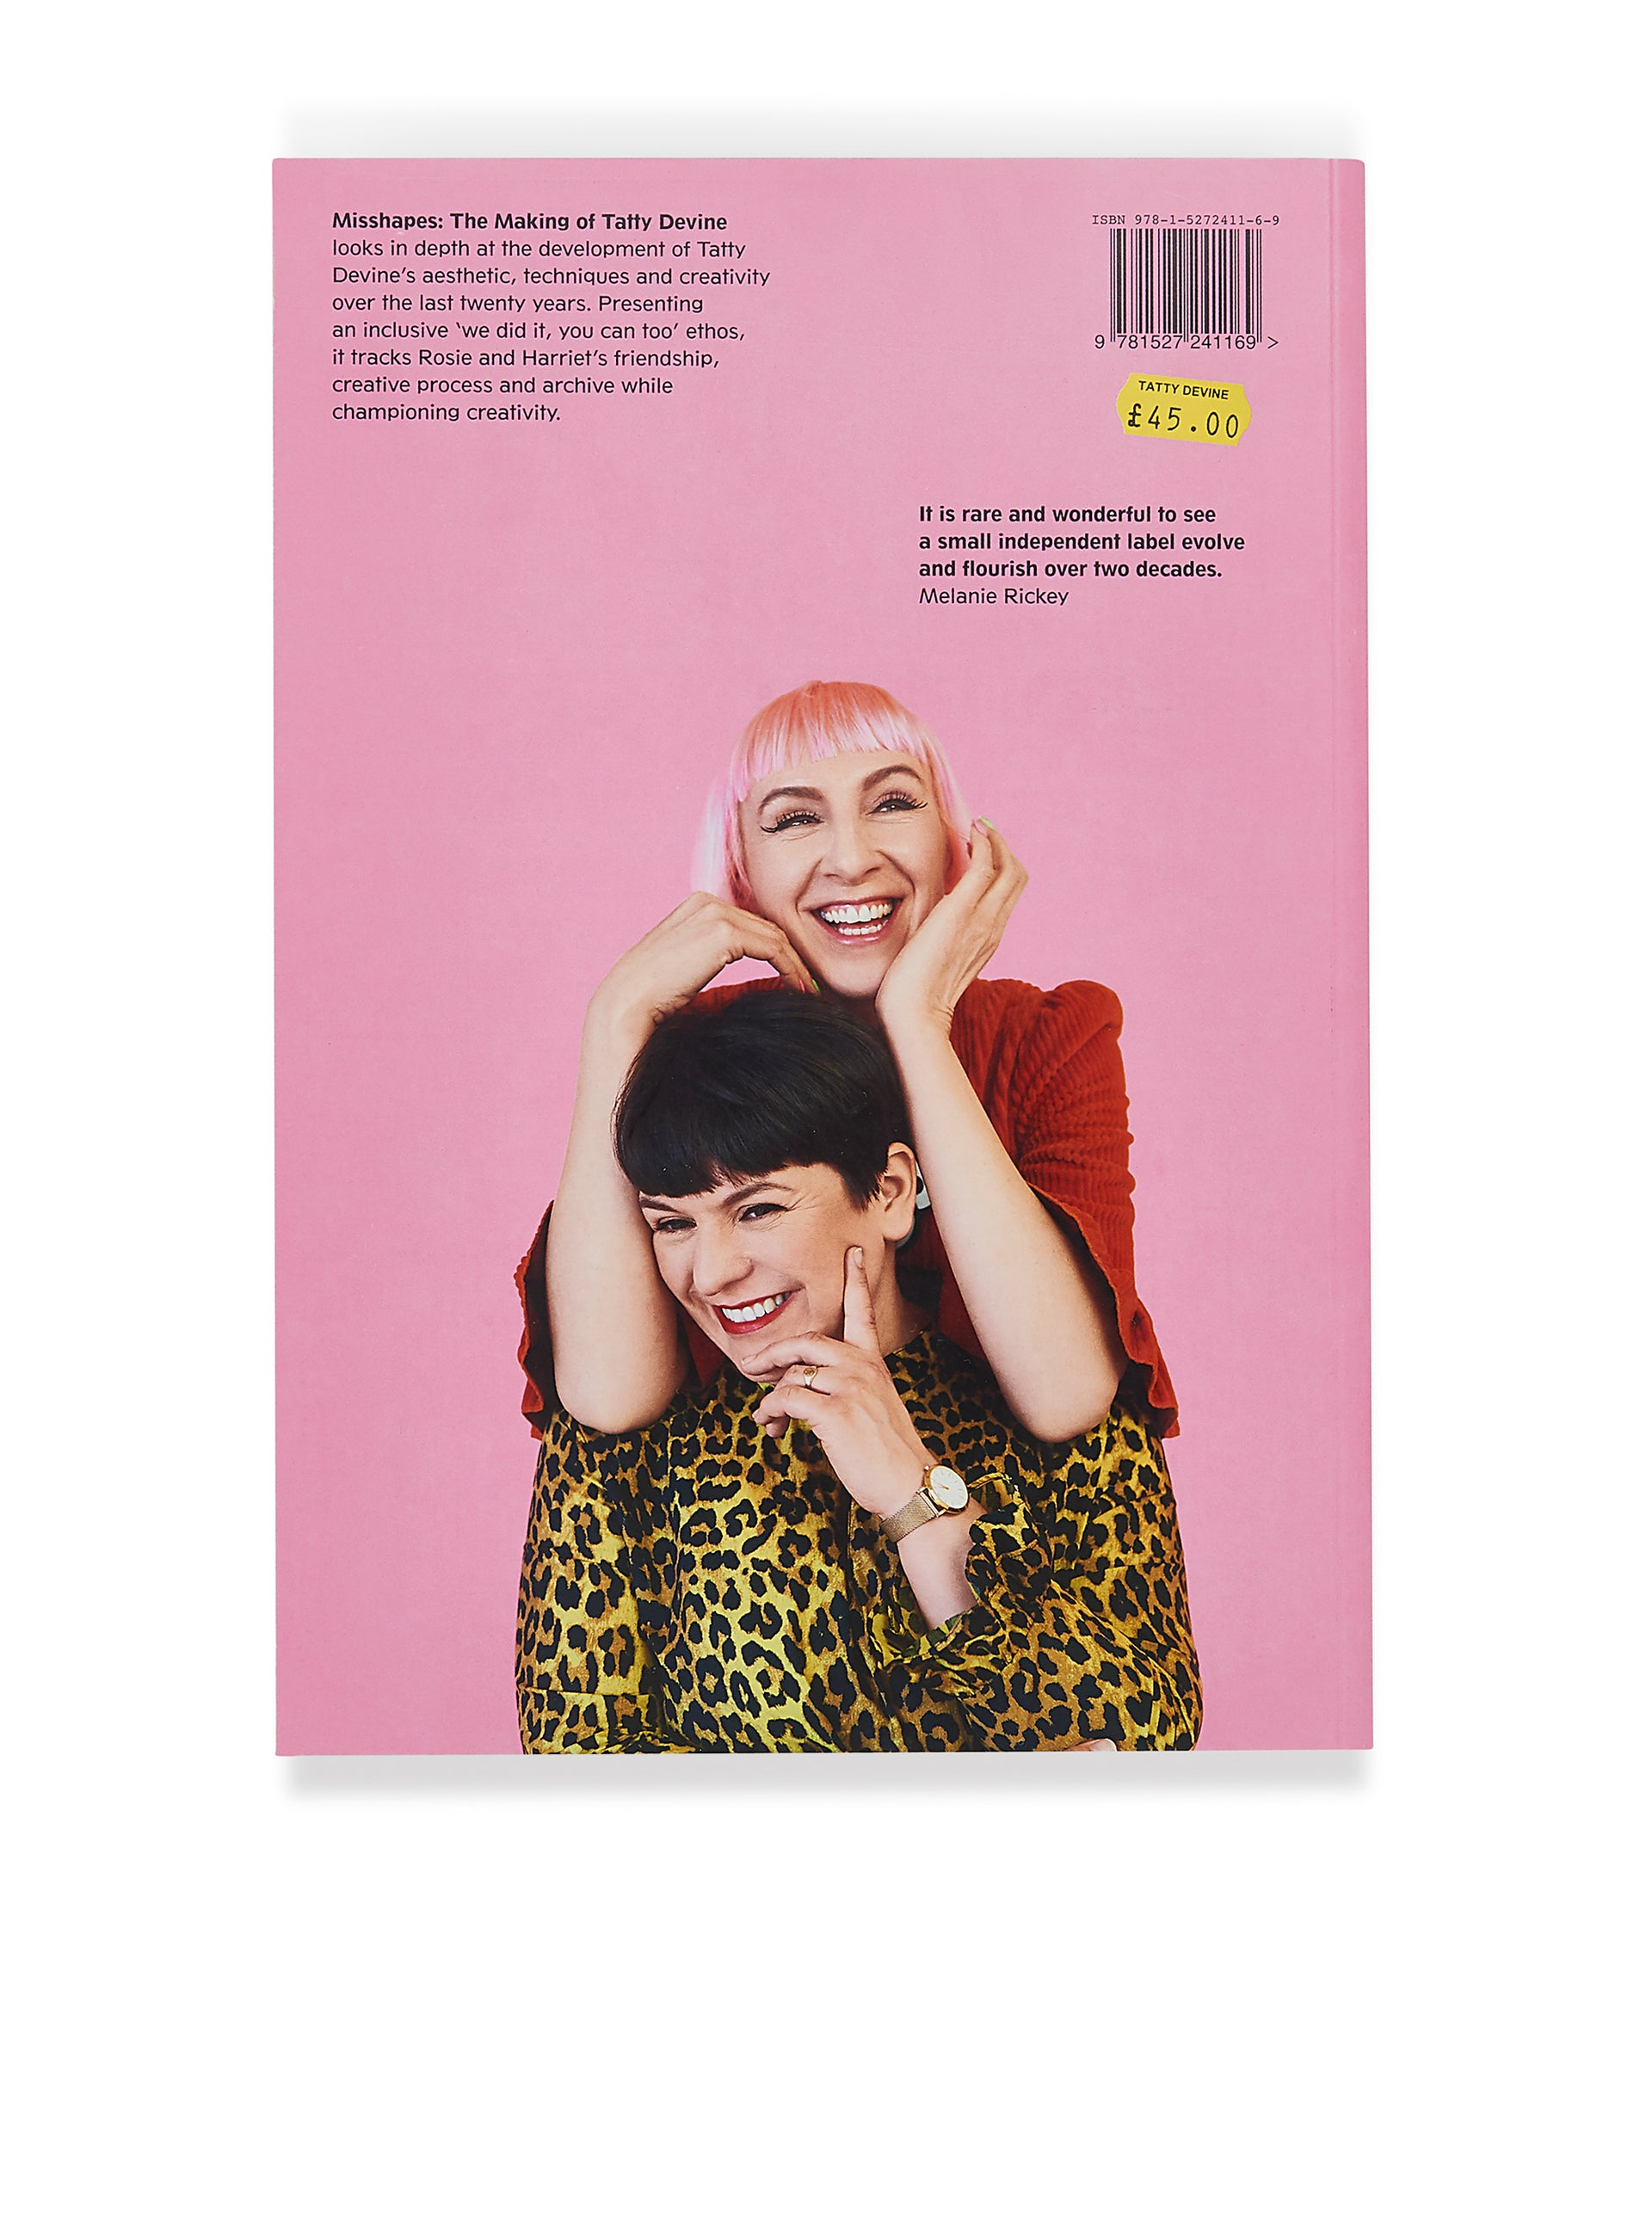 MISSHAPES: The Making of Tatty Devine Book